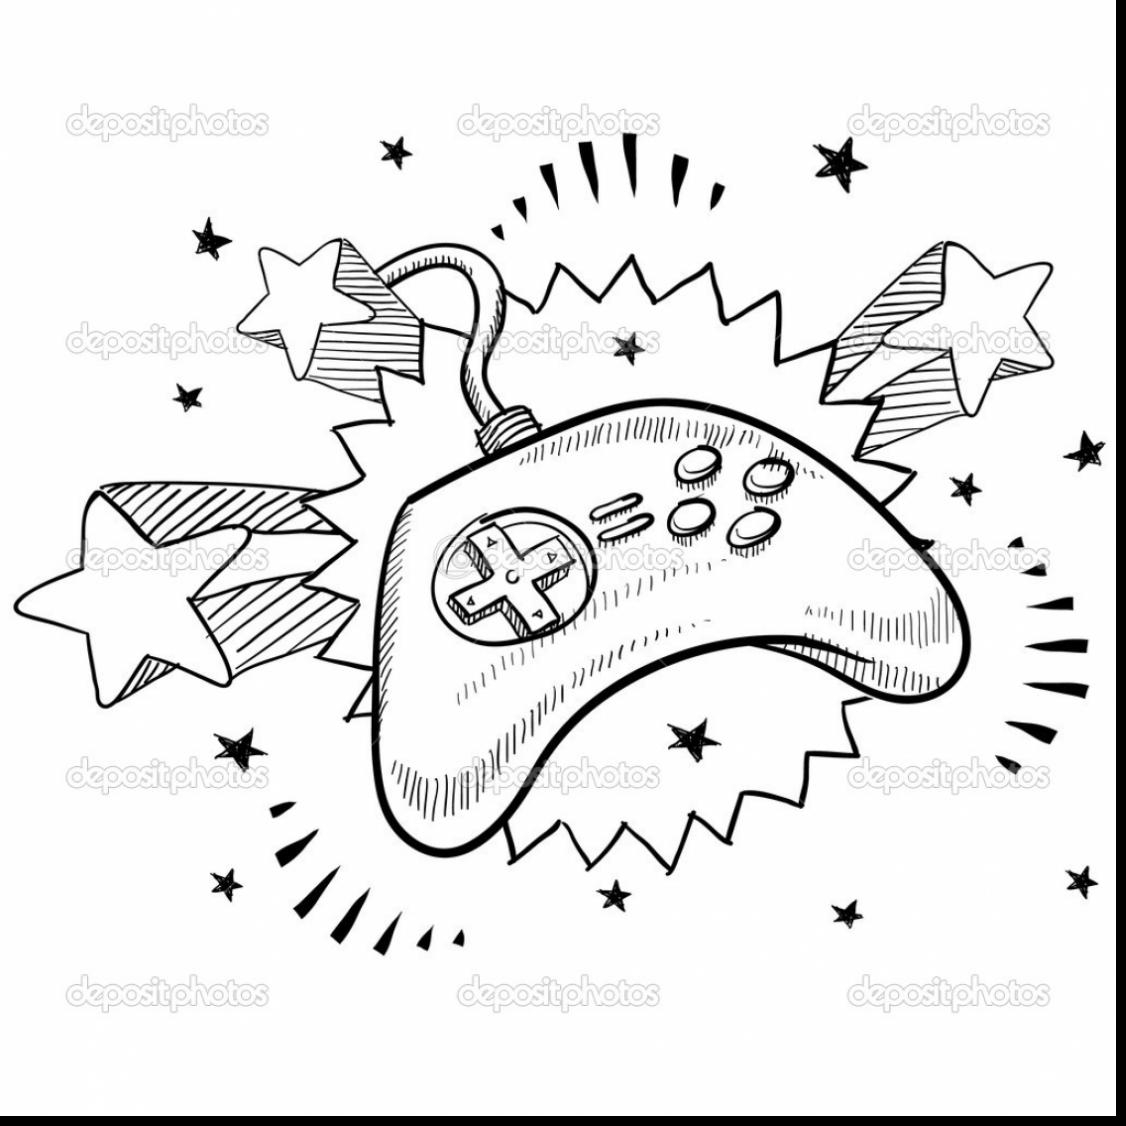 1126x1126 Unique Video Game Remote Control Coloring Pages Collection Free